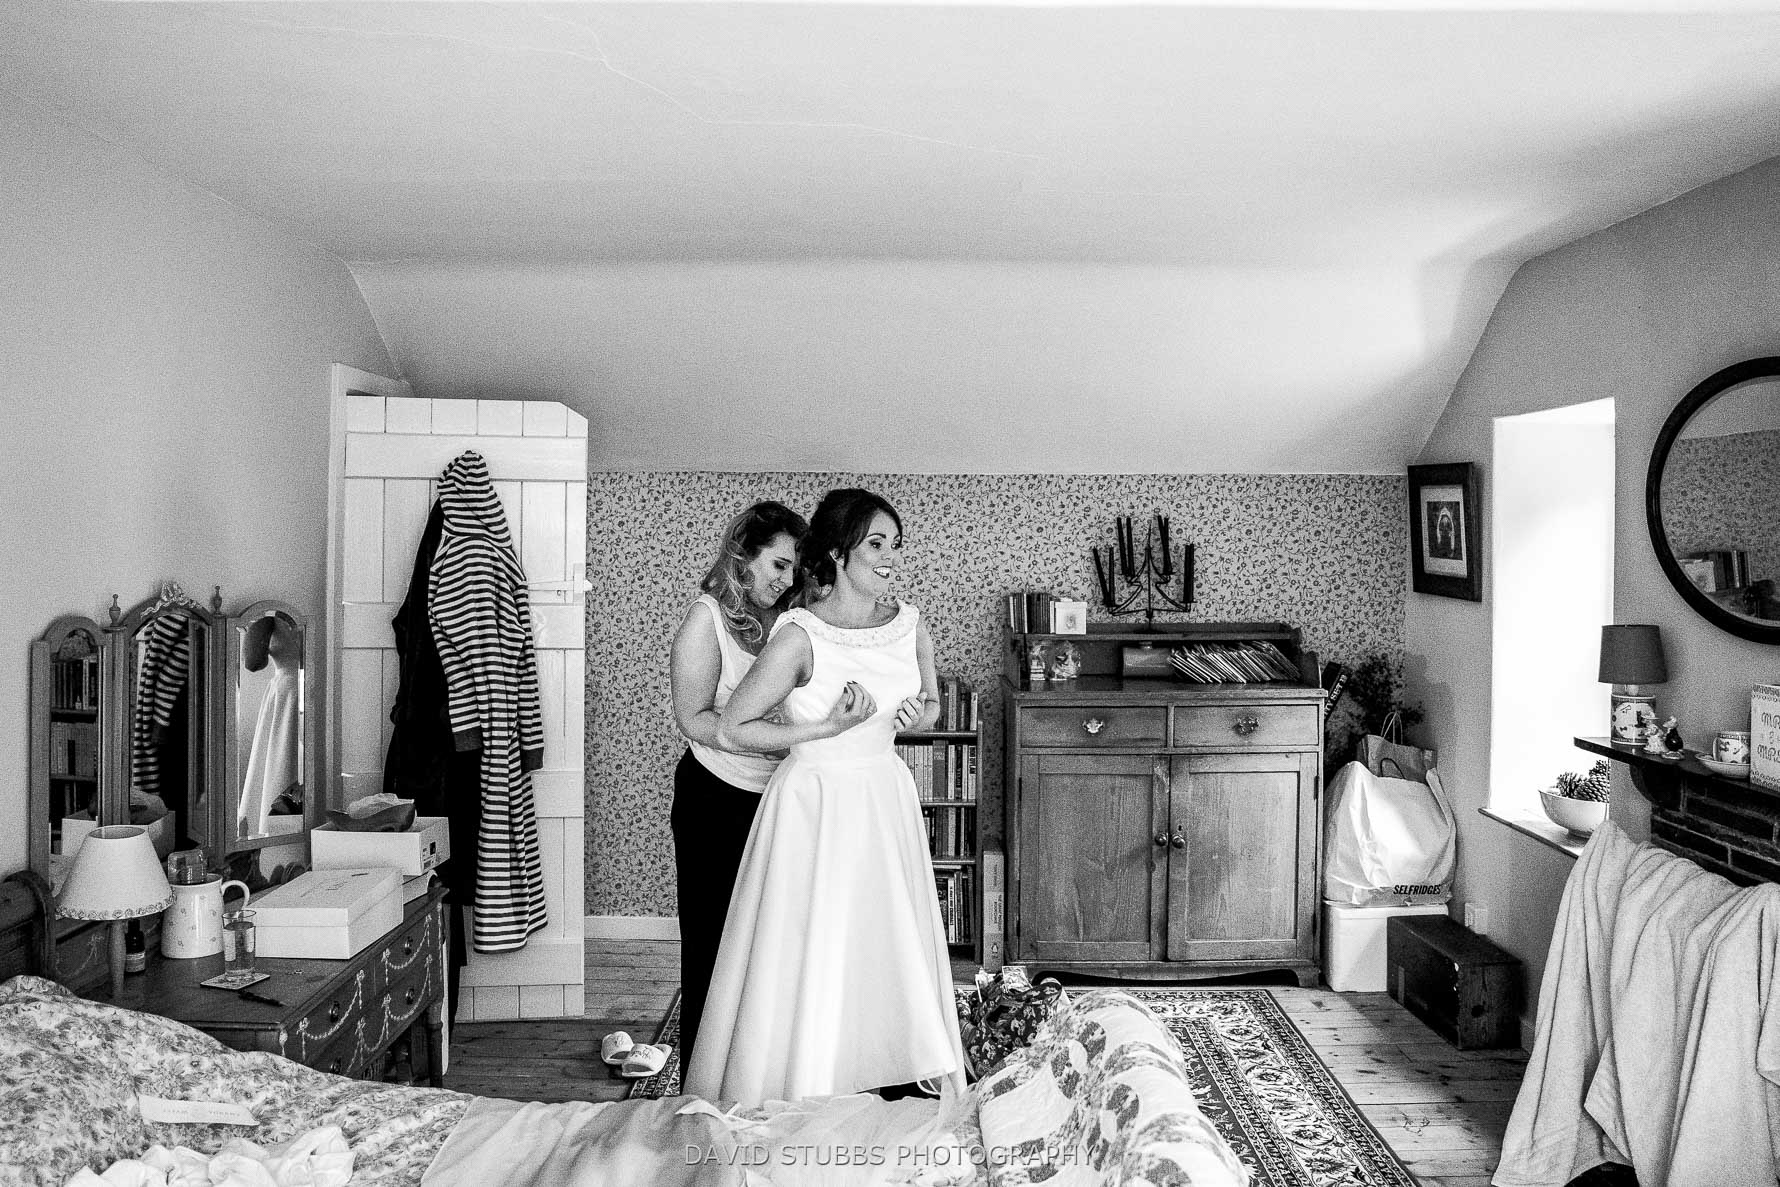 getting her wedding dress on before ceremony